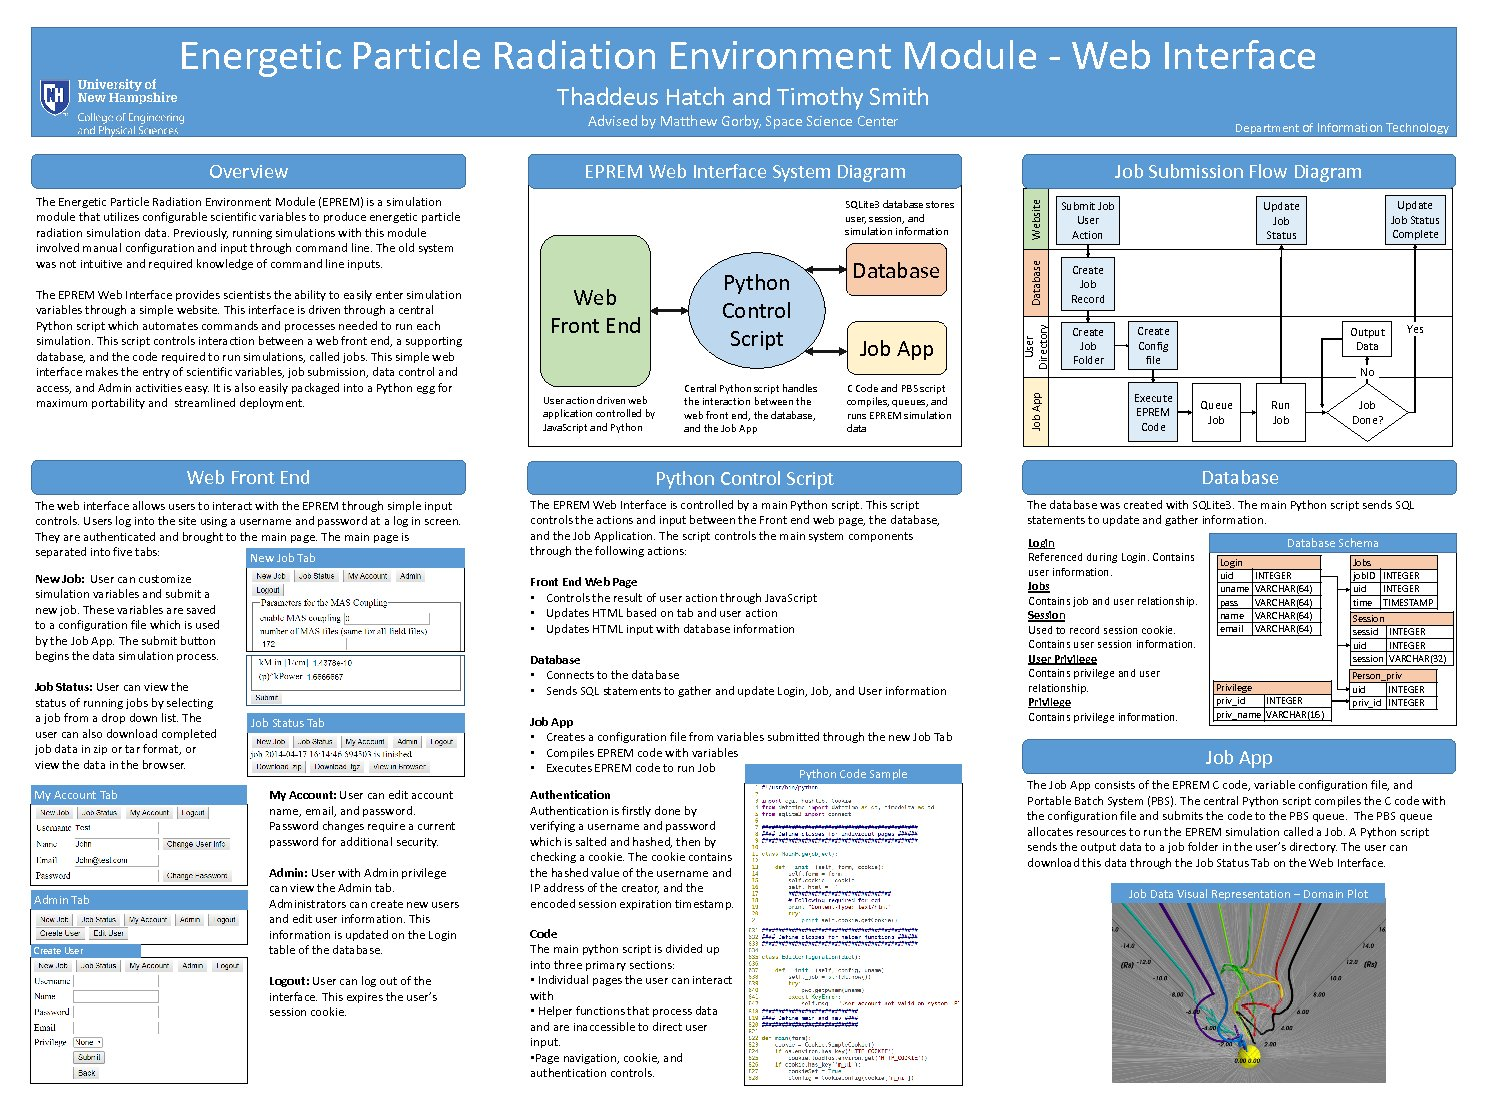 Energetic Particle Radiation Environment Module - Web Interface by tjv45